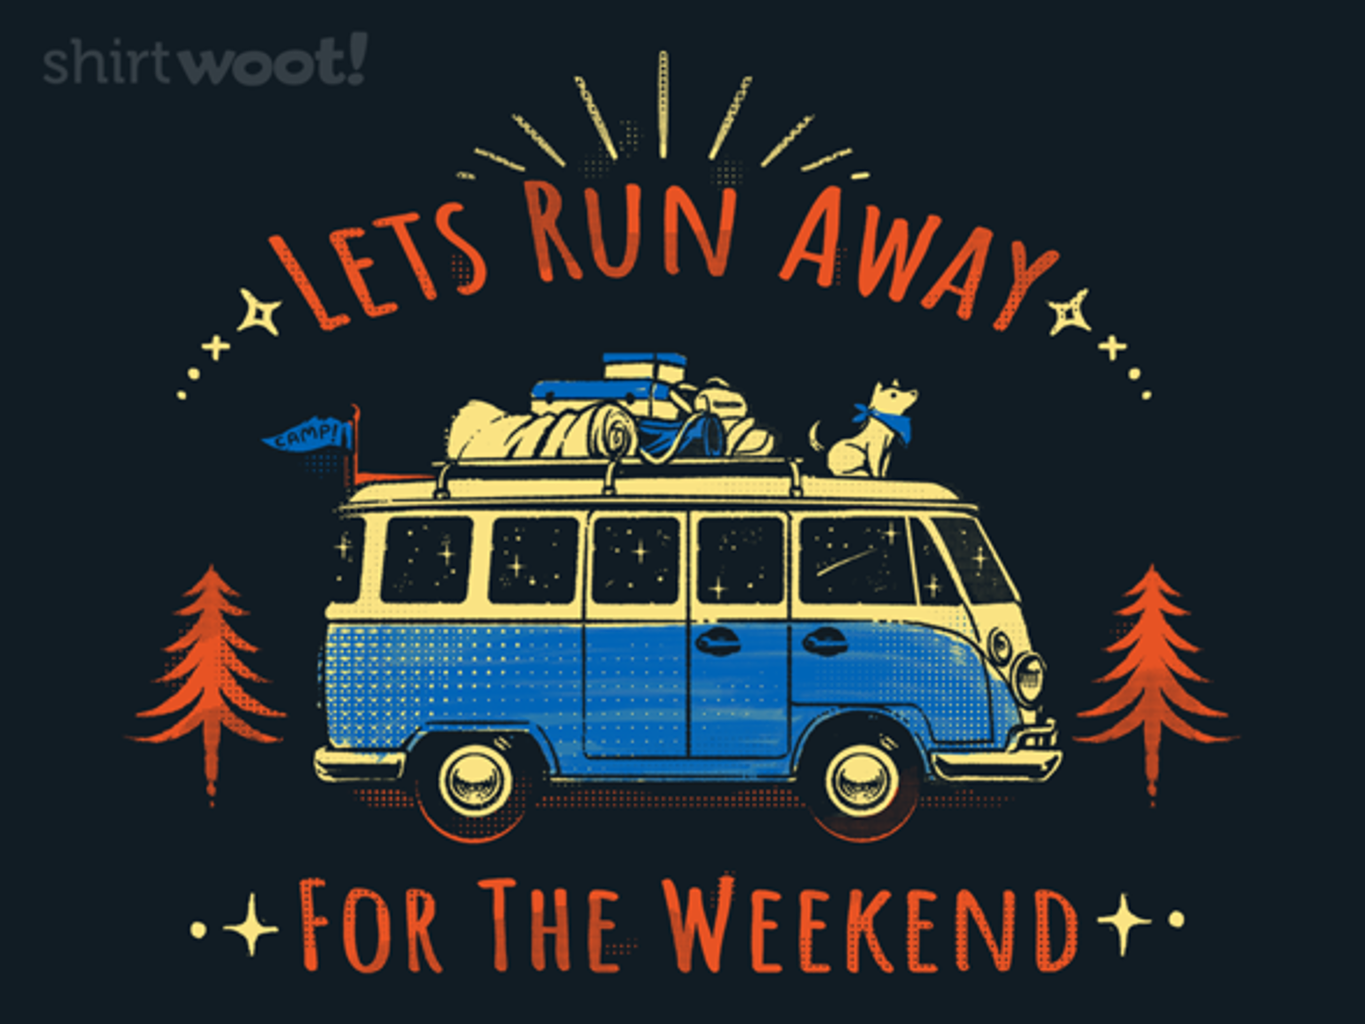 Woot!: Let's Run Away - For The Weekend